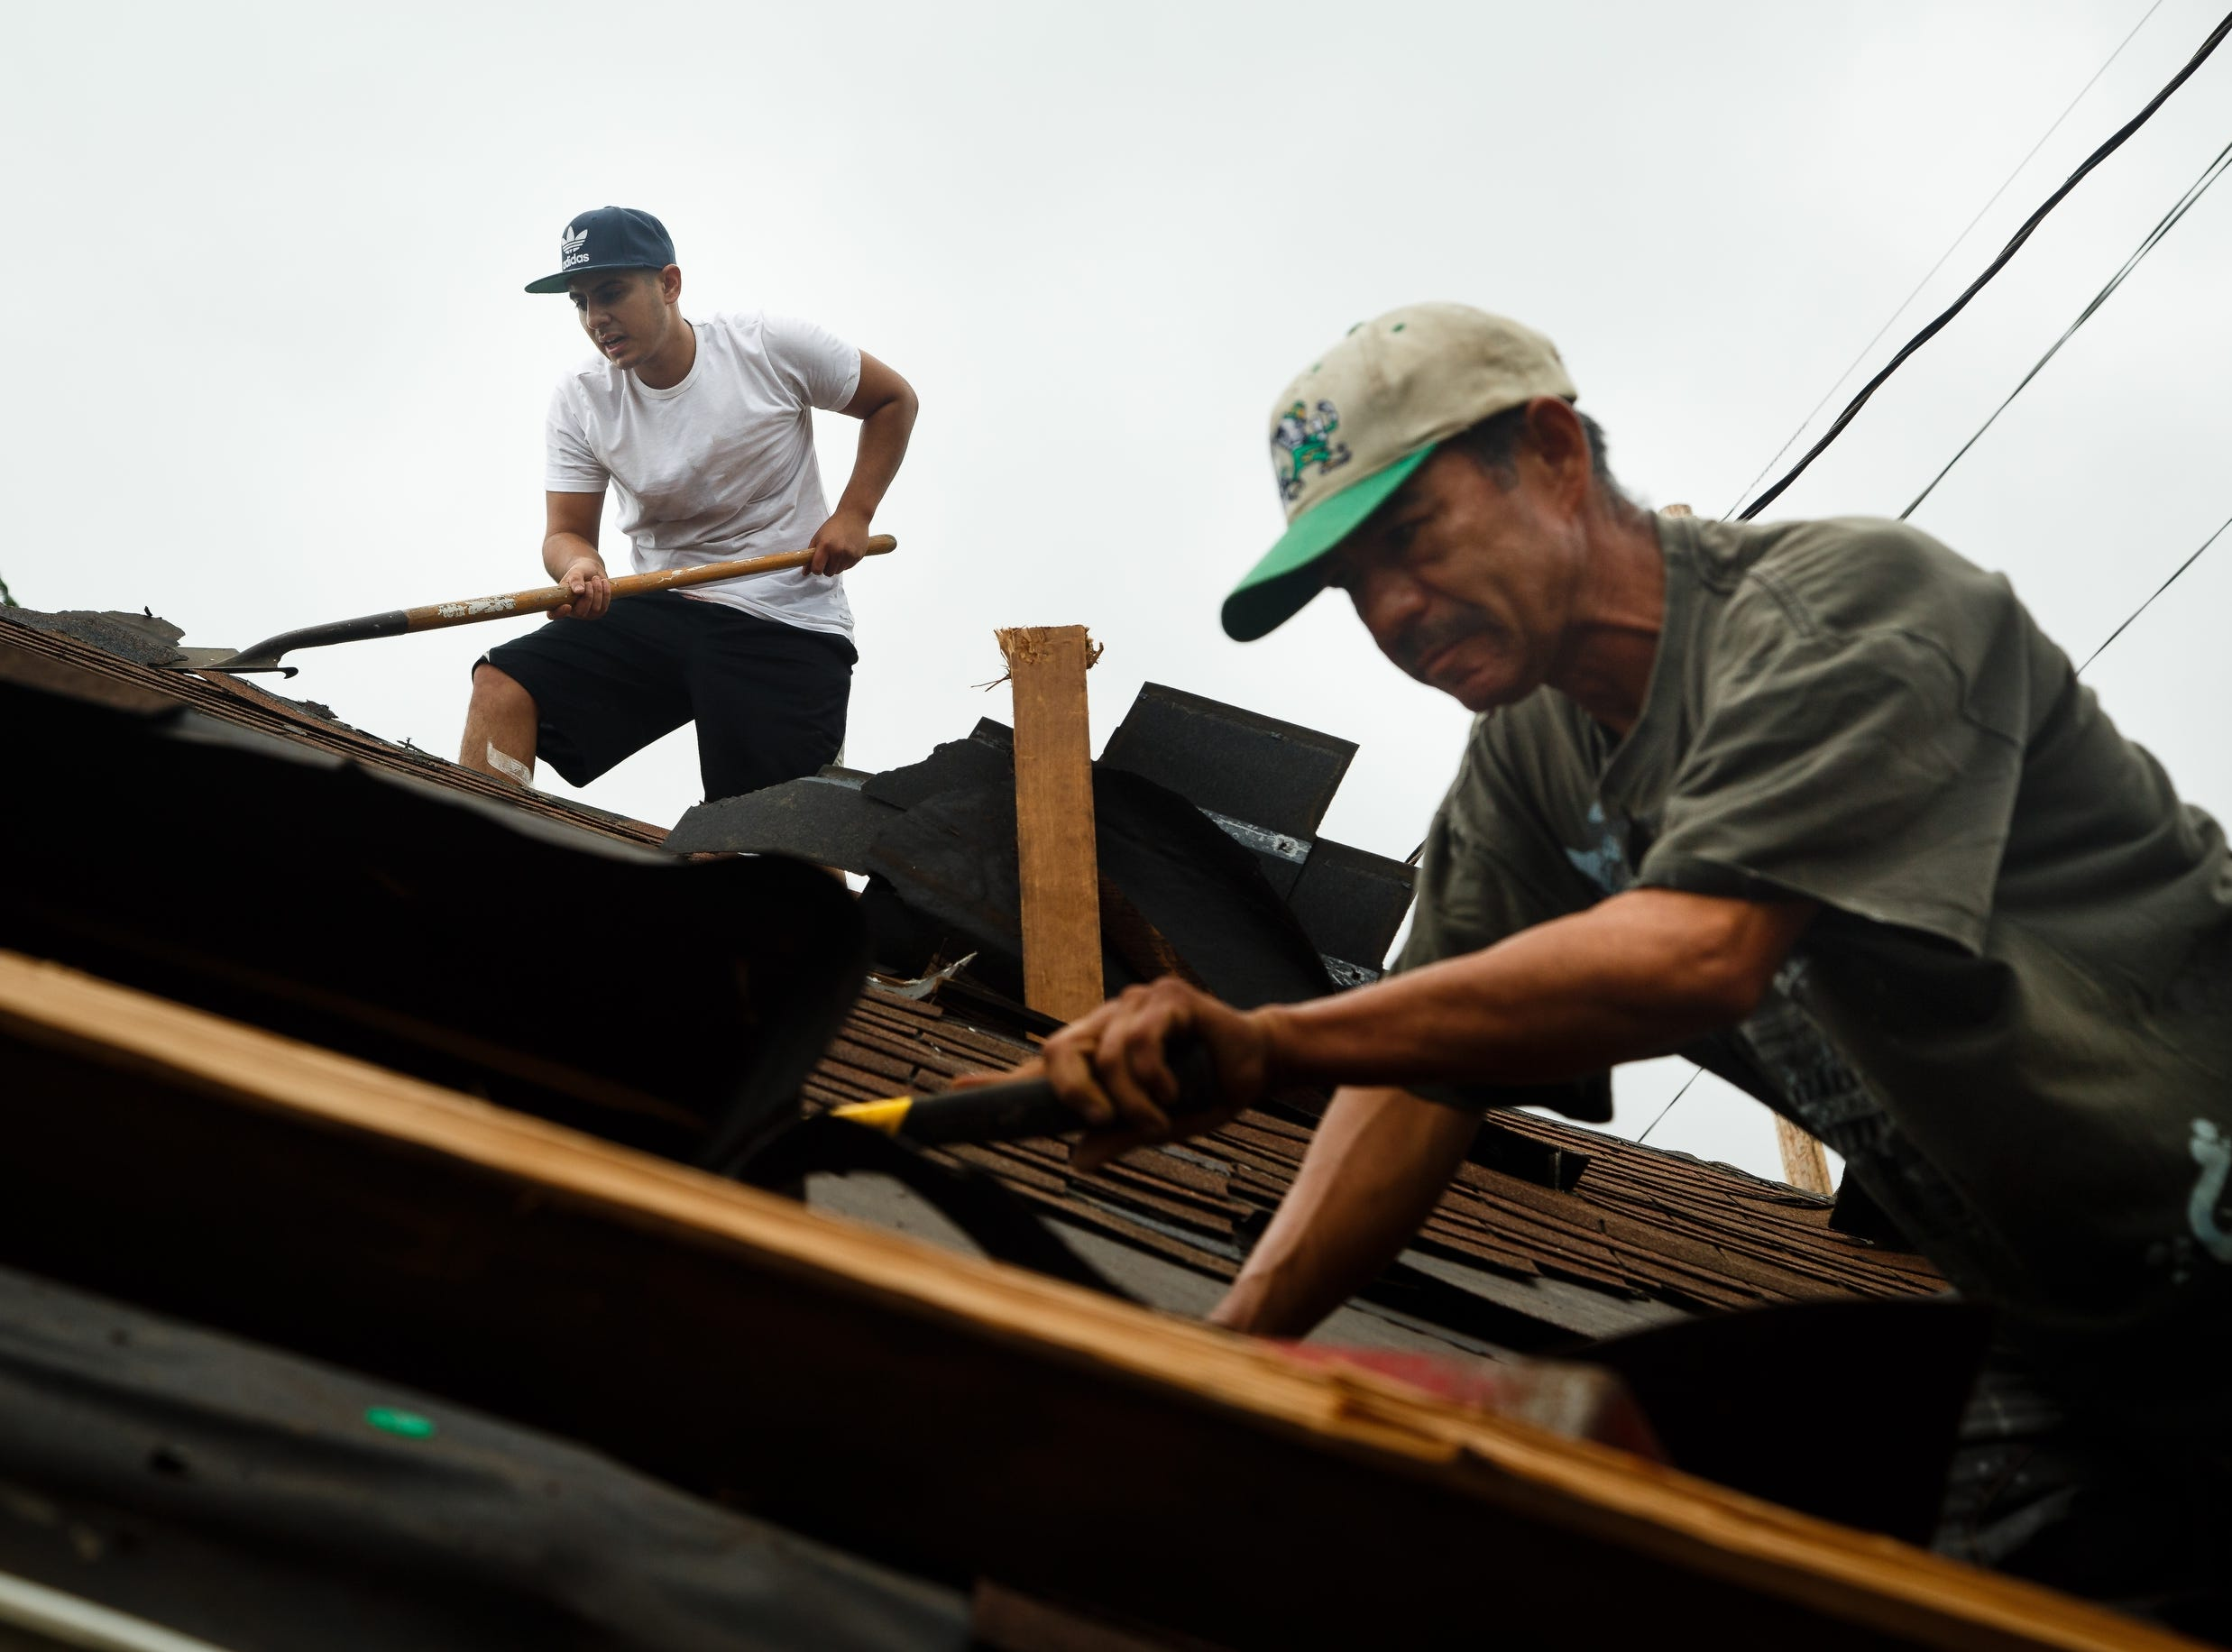 Jose Cervantes, right, and Miguel Ochoa, left, remove the shingles from a blown off roof on Friday, July 20, 2018. Tornadoes swept through central Iowa yesterday causing severe damage but only minor injuries have been reported so far.